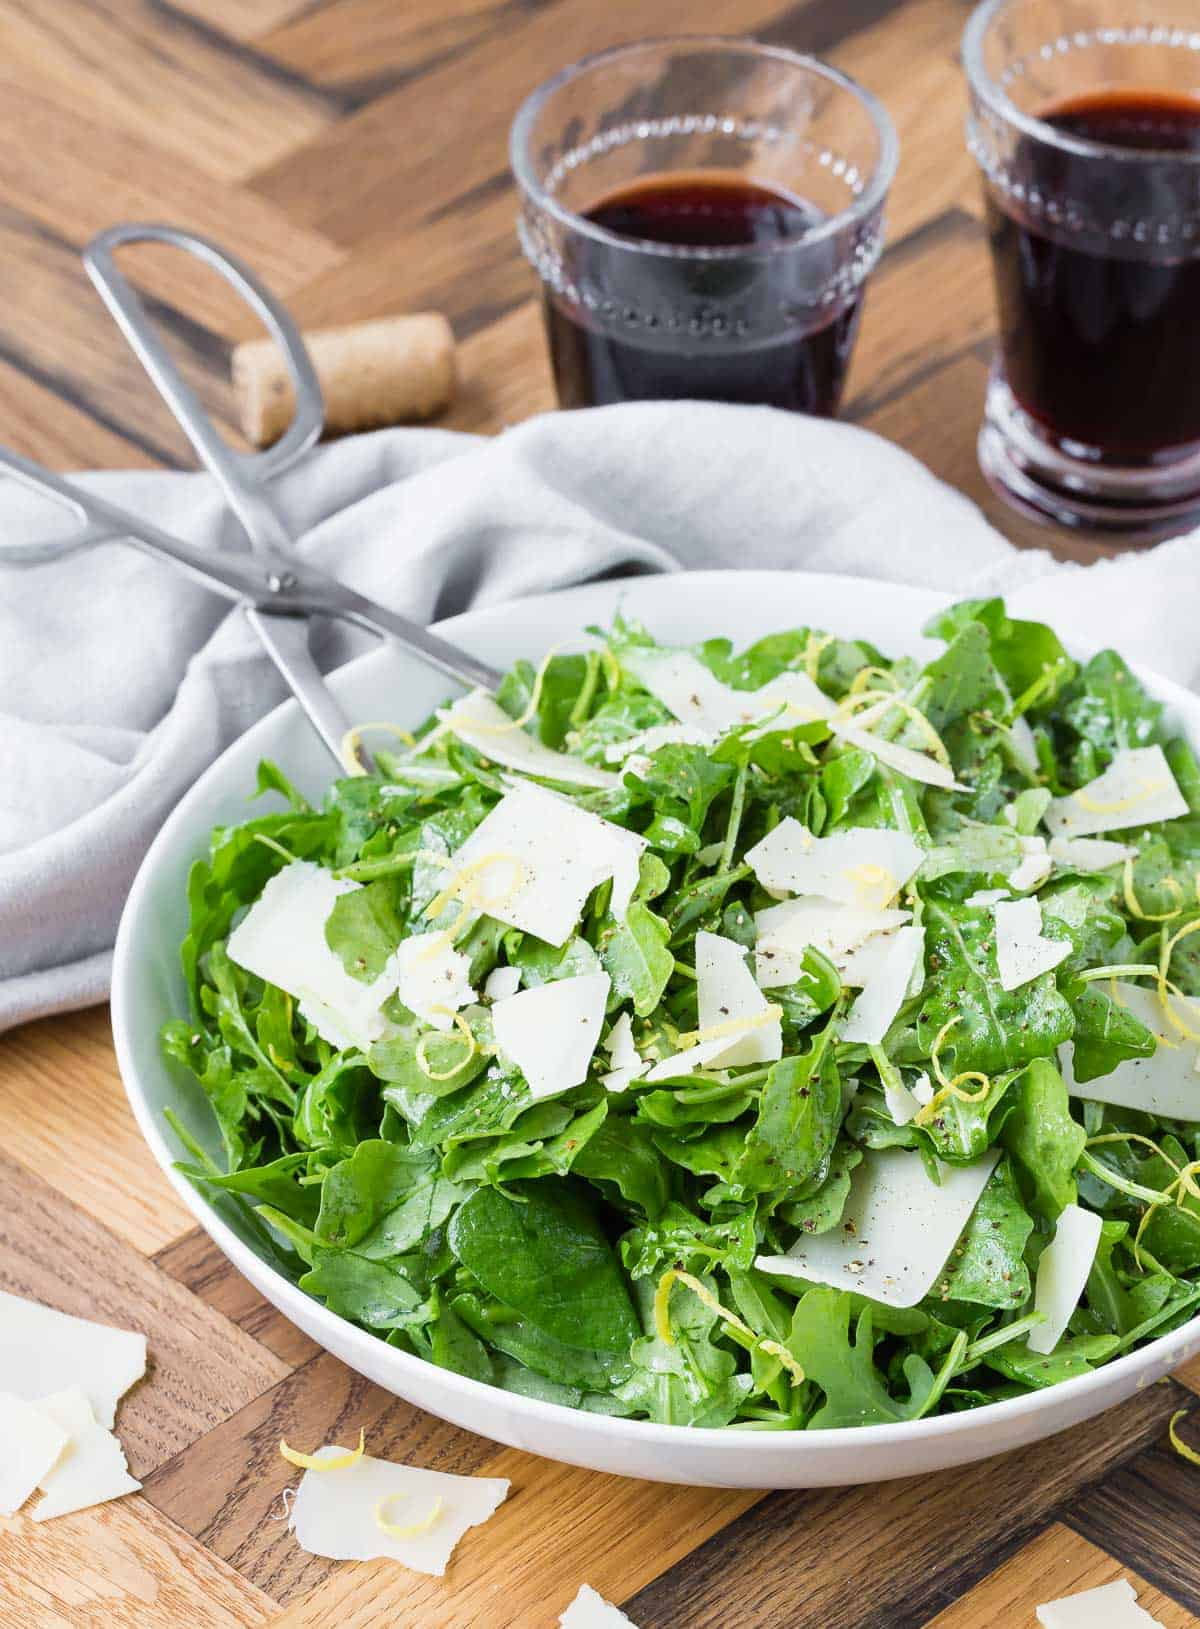 Arugula, parmesan and lemon zest in a white bowl on a wooden background, with two glasses of red wine.